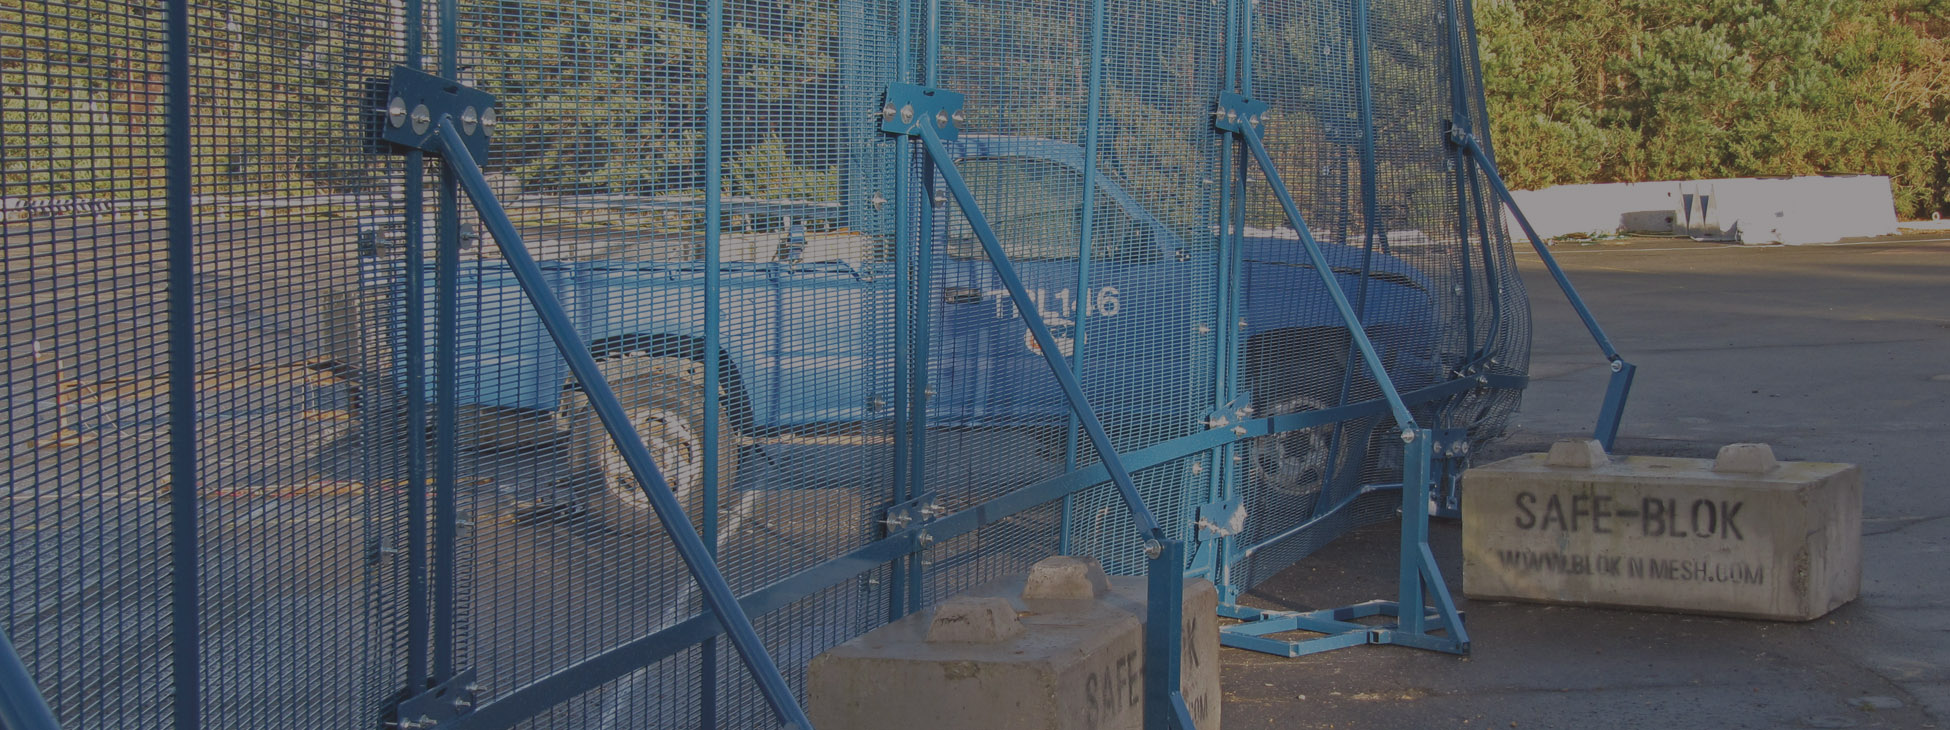 PAS68 tested temporary security fencing systems